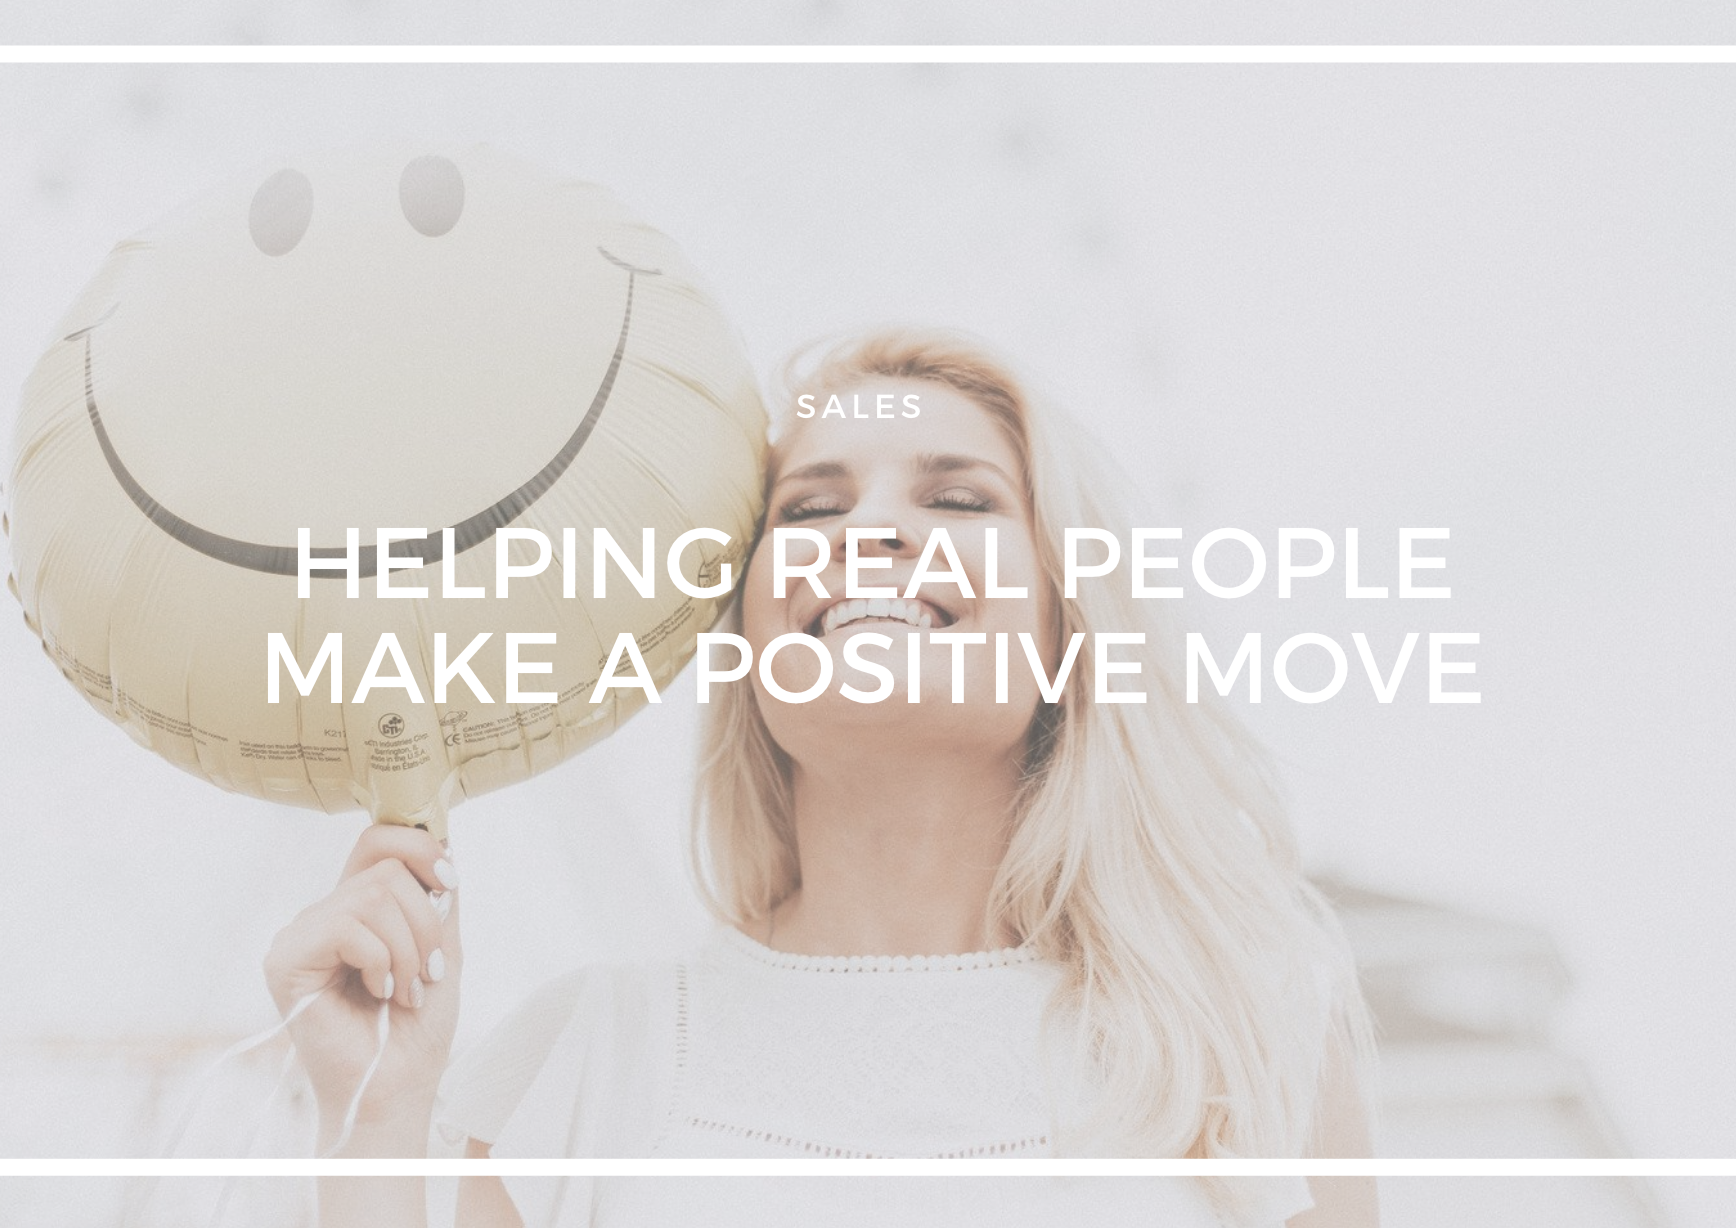 HELPING REAL PEOPLE MAKE A POSITIVE MOVE